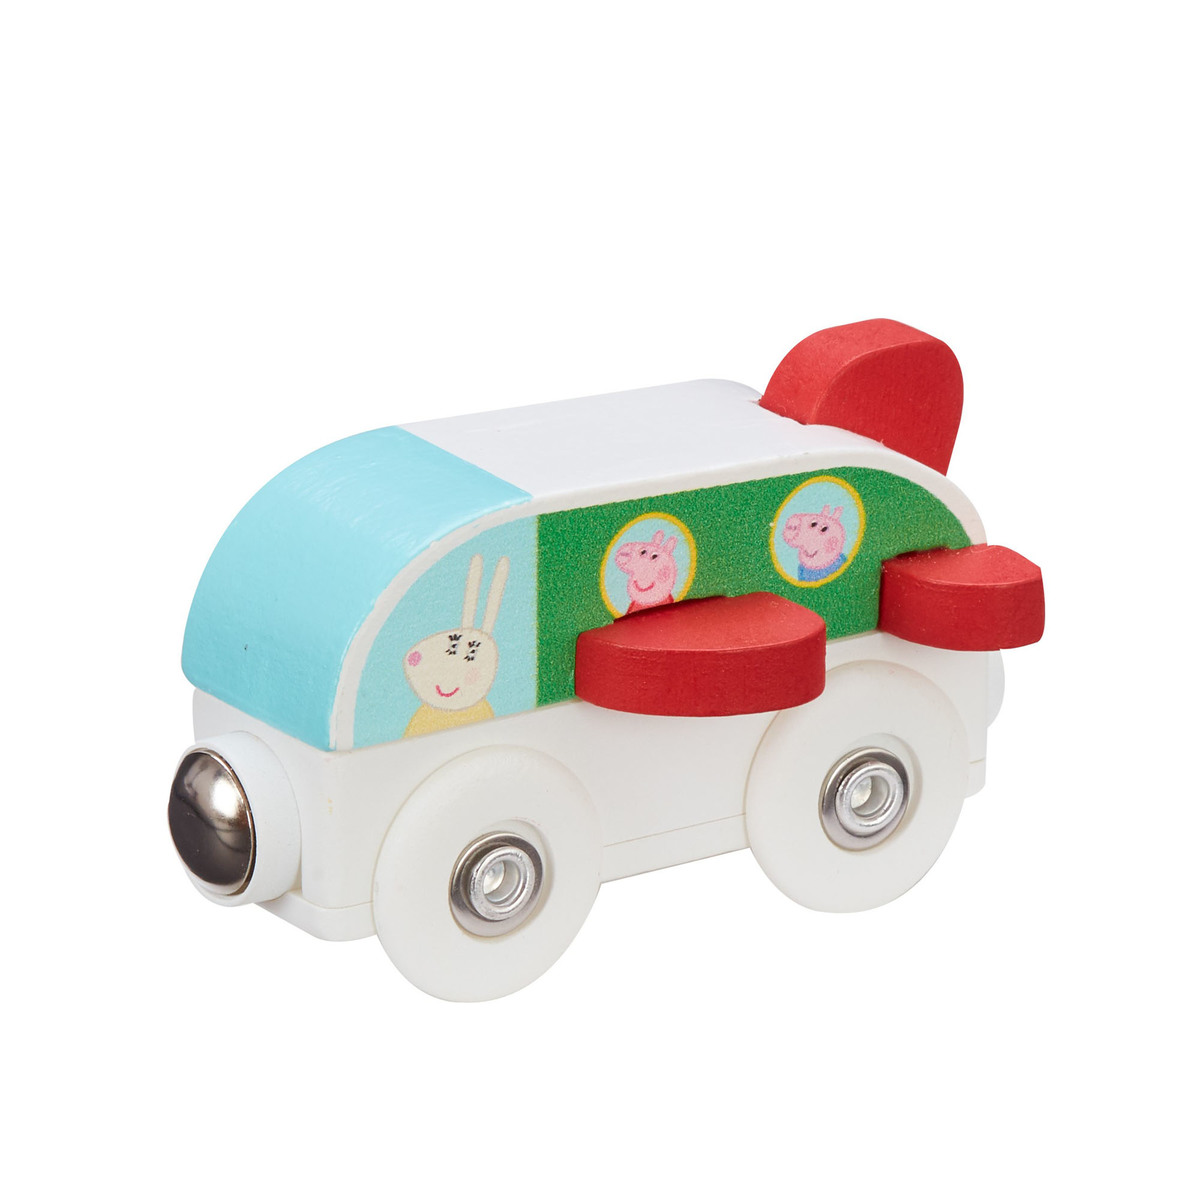 Peppa Pig Wooden Mini Vehicles - Plane from Early Learning Center